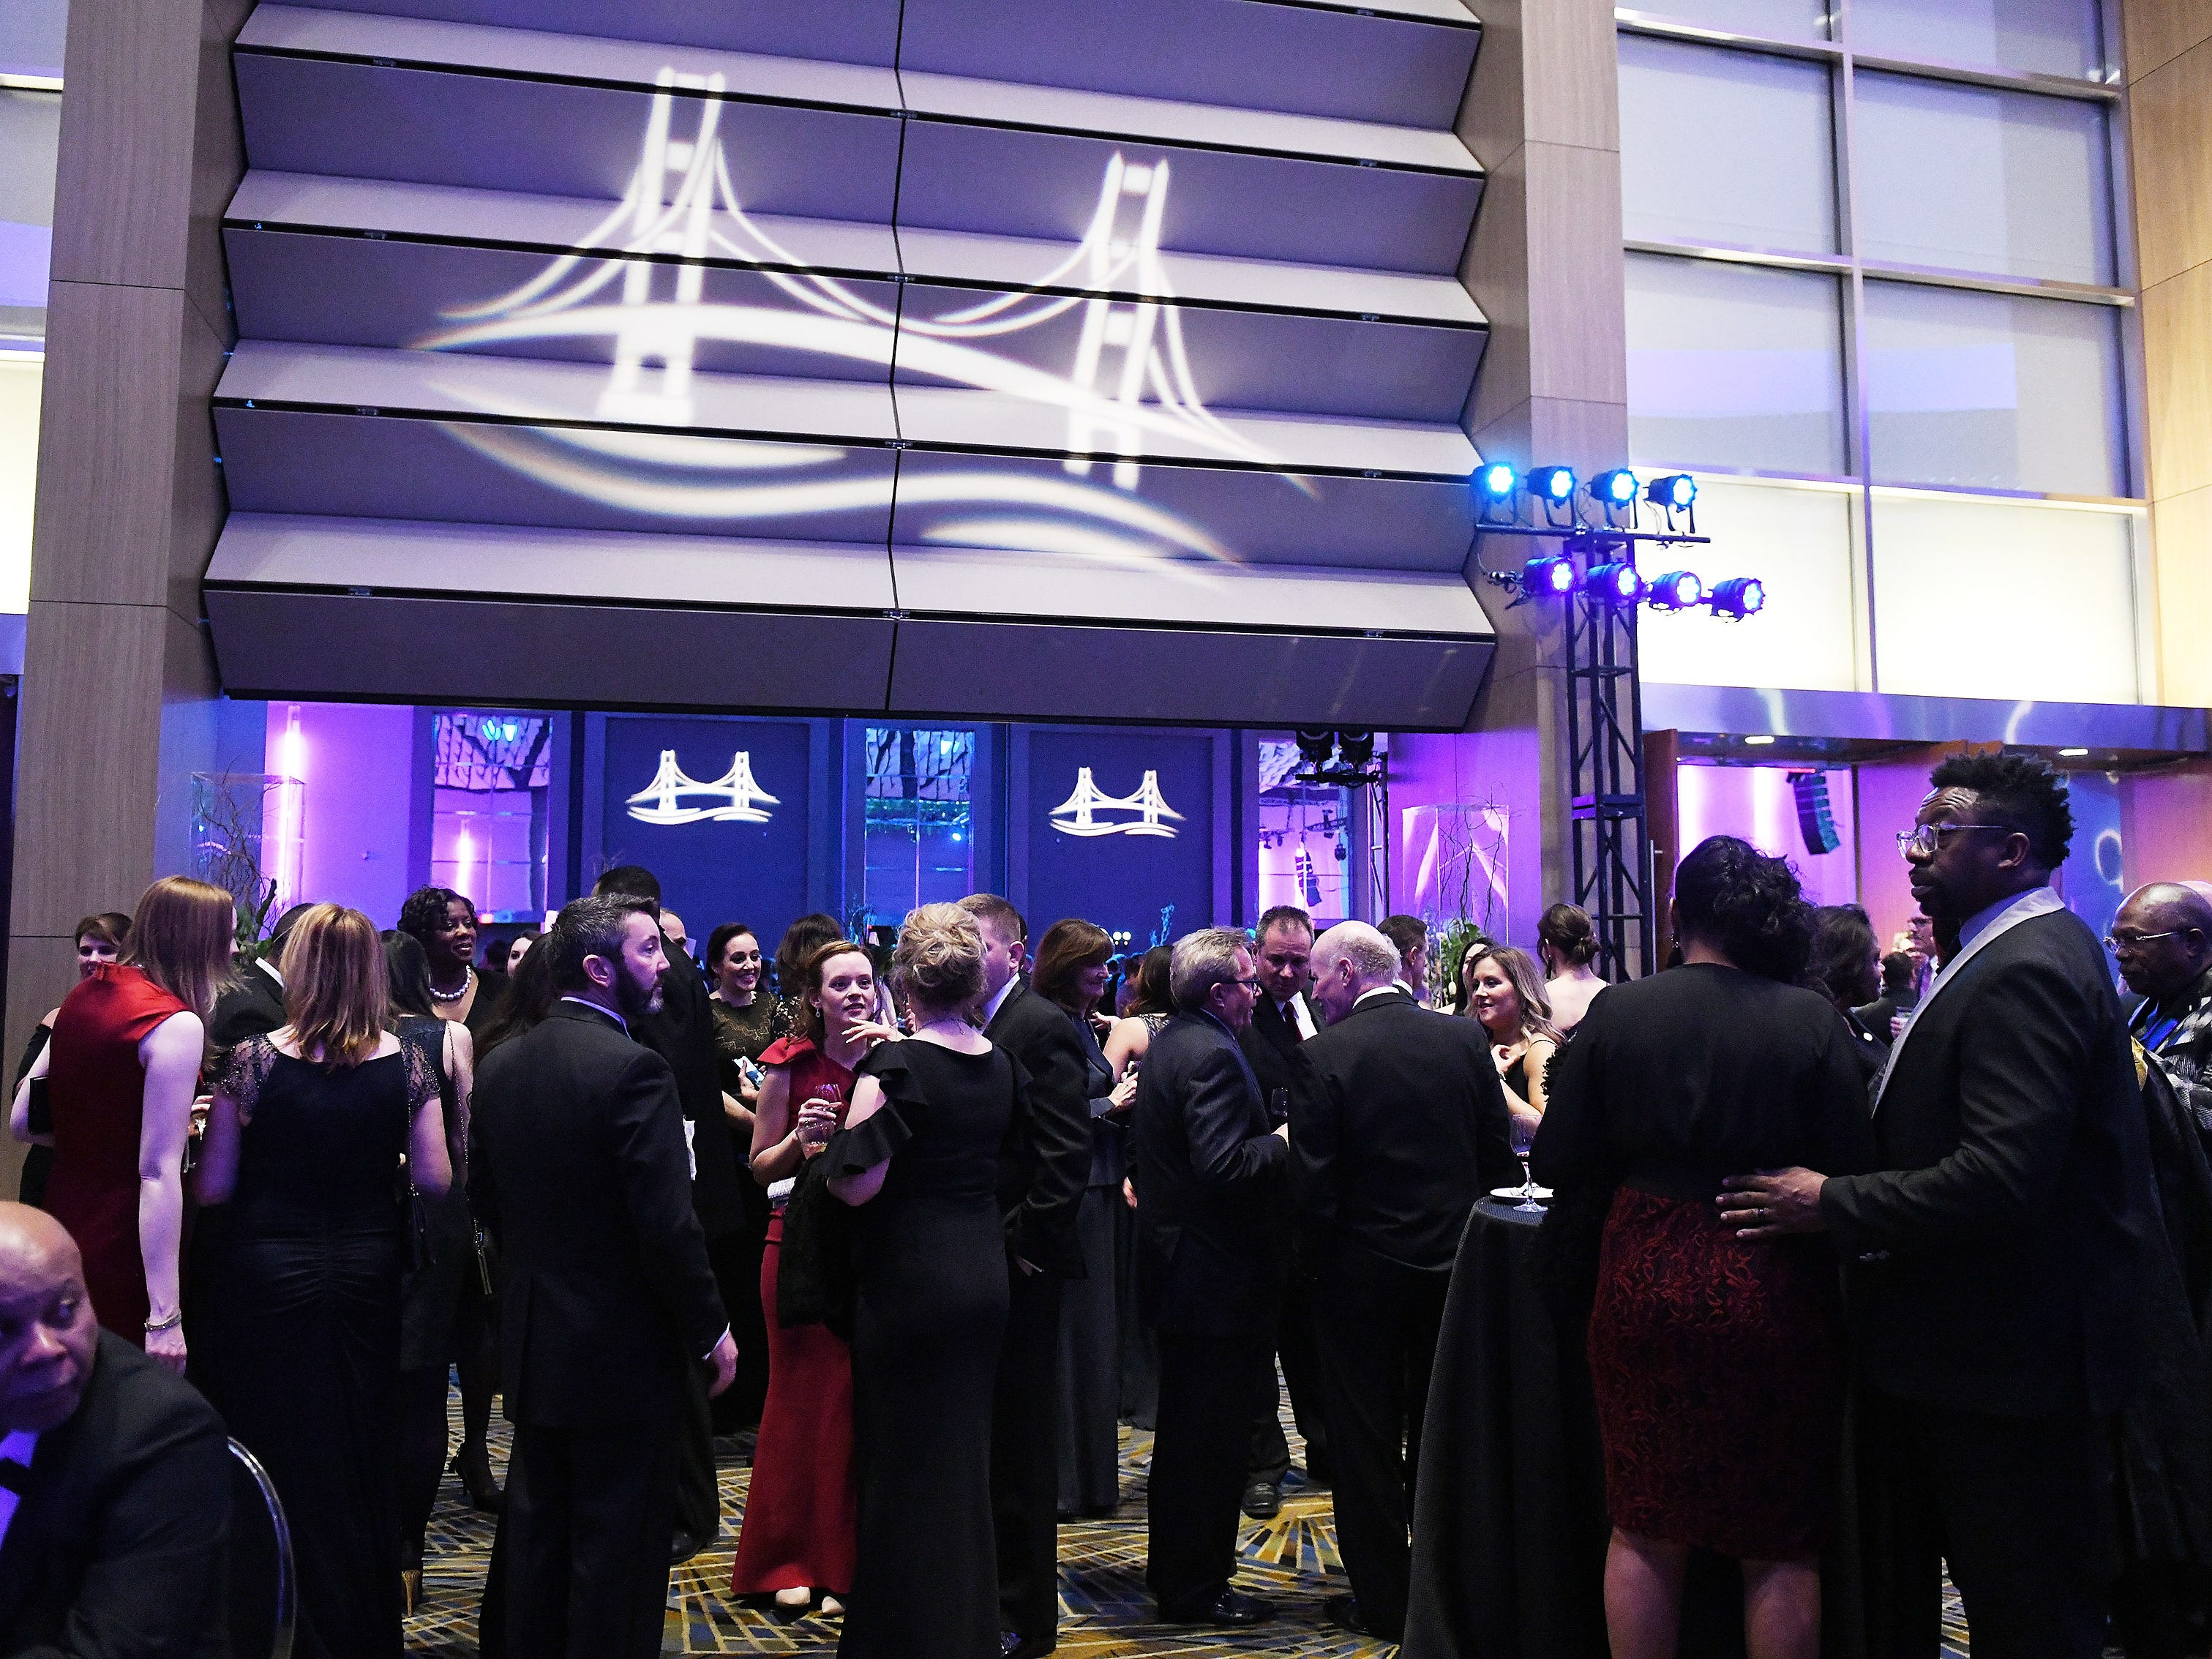 Attendees gather around and in the Grand Riverview Ballroom at the Inauguration Celebration at Cobo Center.